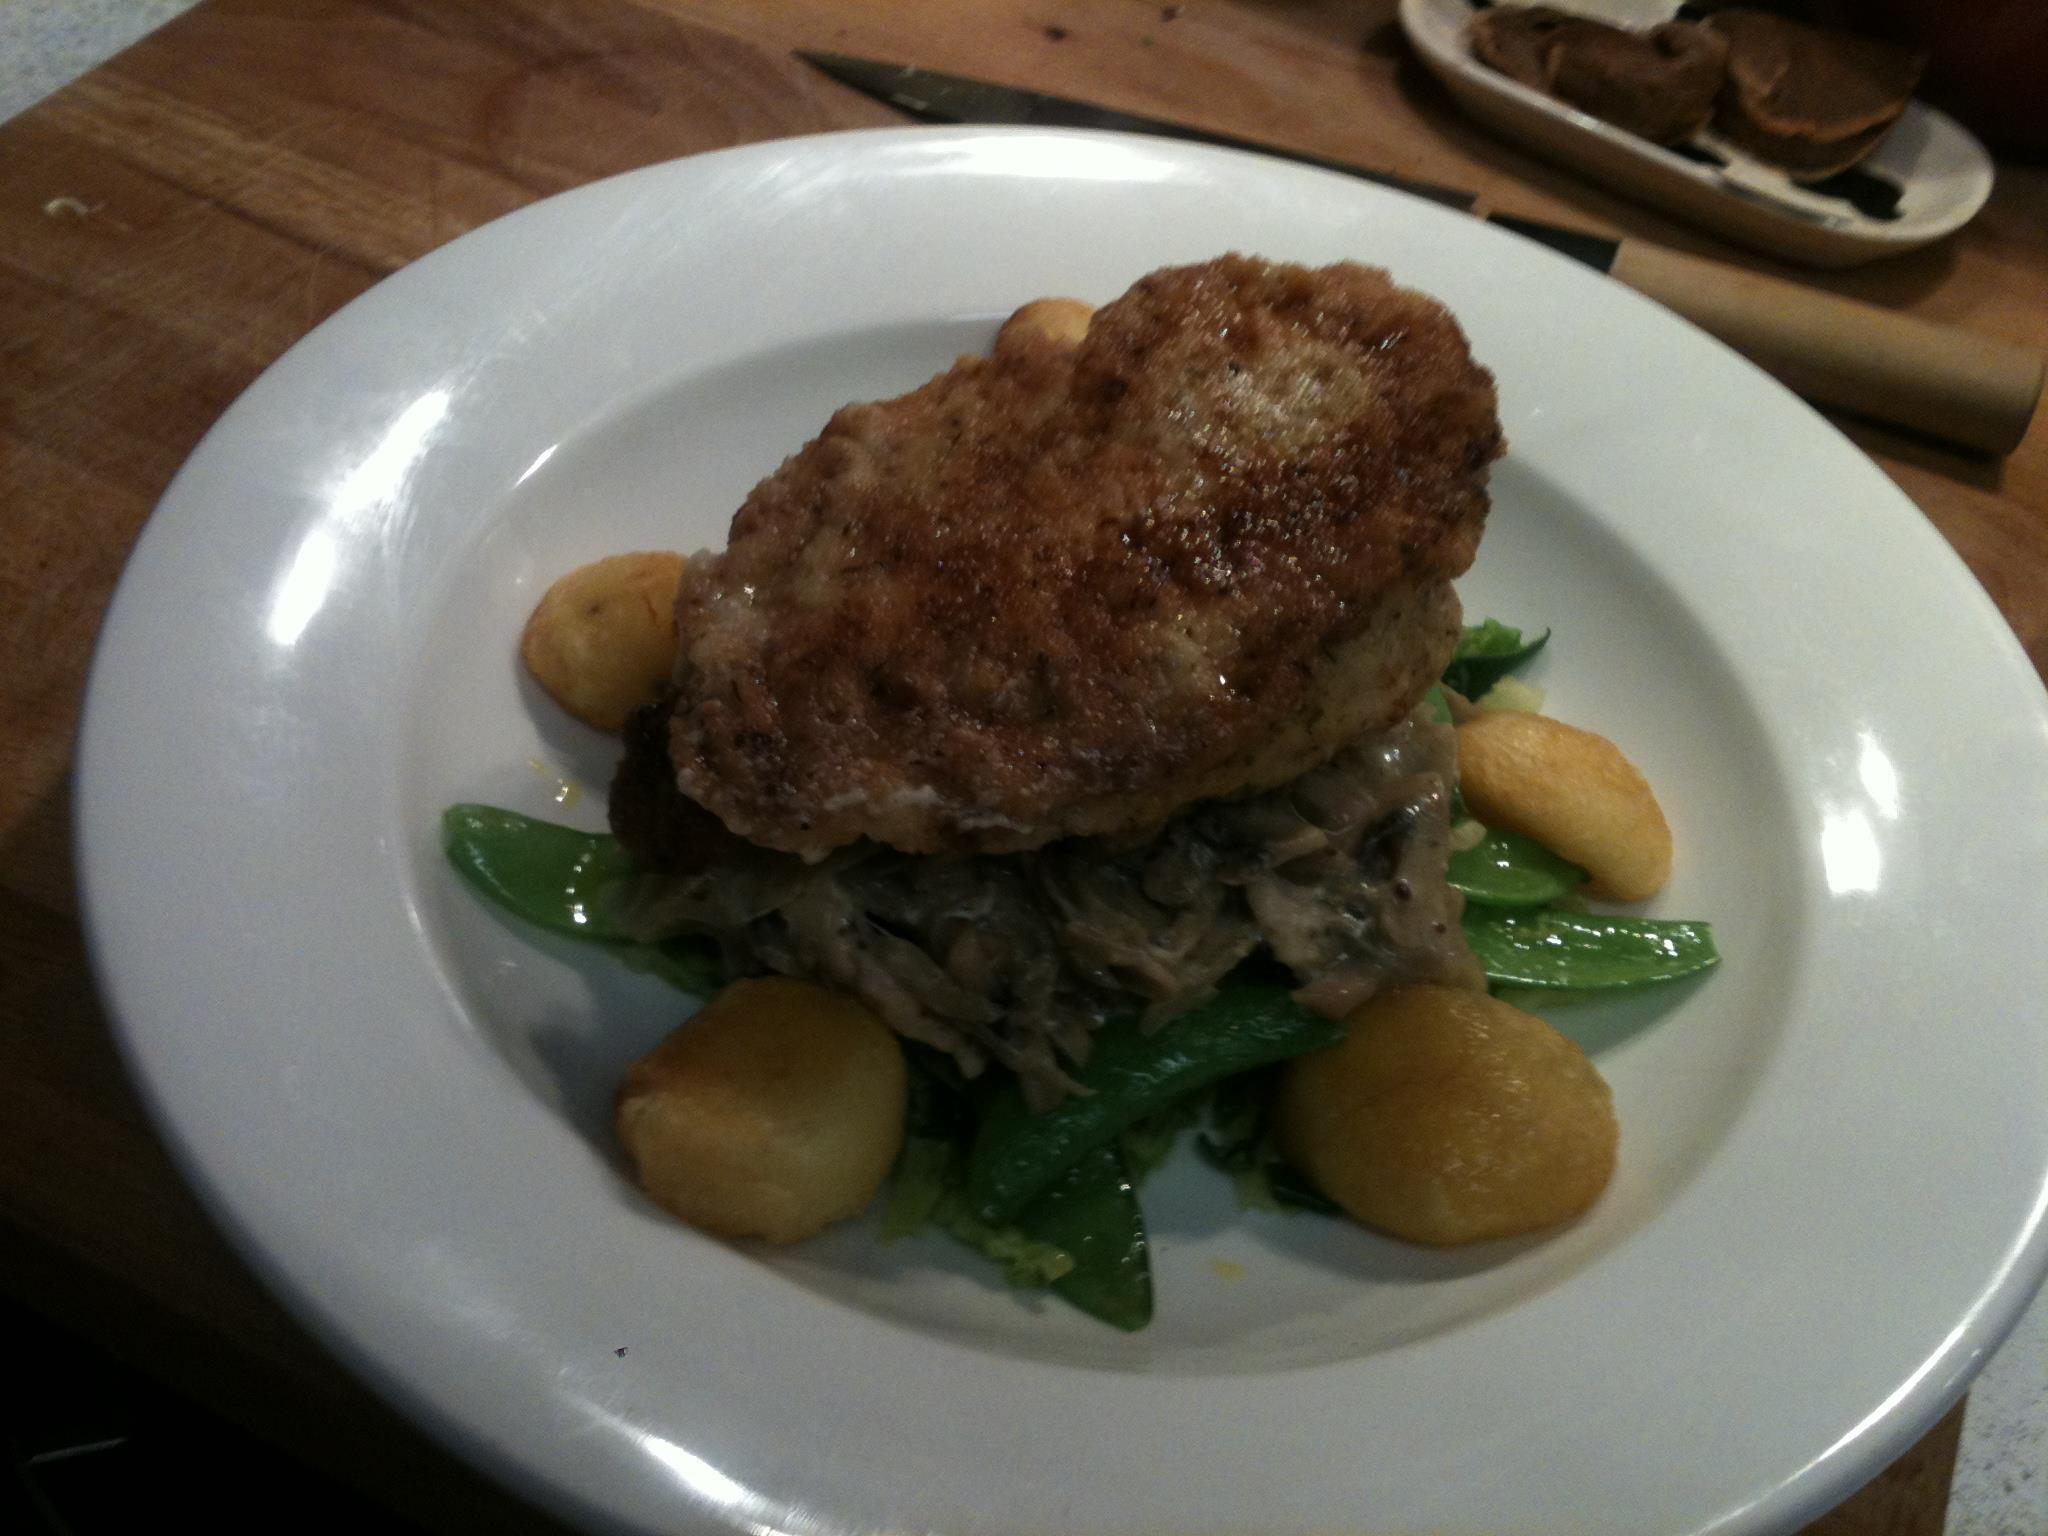 Garlic buttered chicken kiev with almond roast potatoes, mushroom fricasse & mangetout